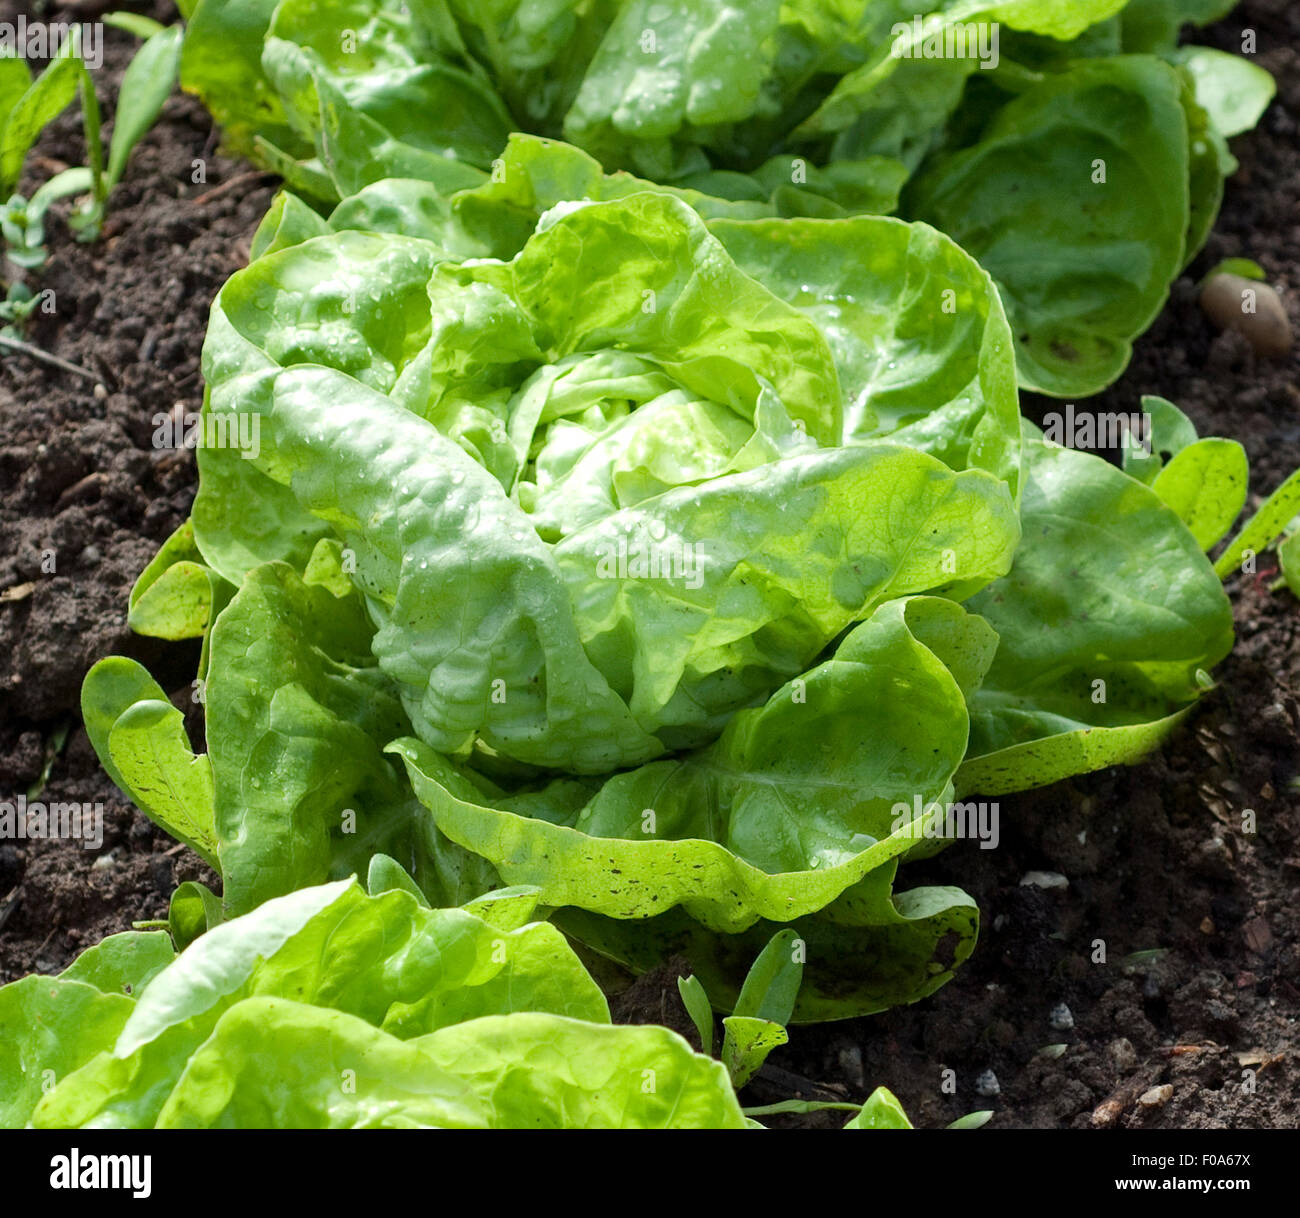 Kopfsalat, Salat, Lactuca, sativa, Stock Photo